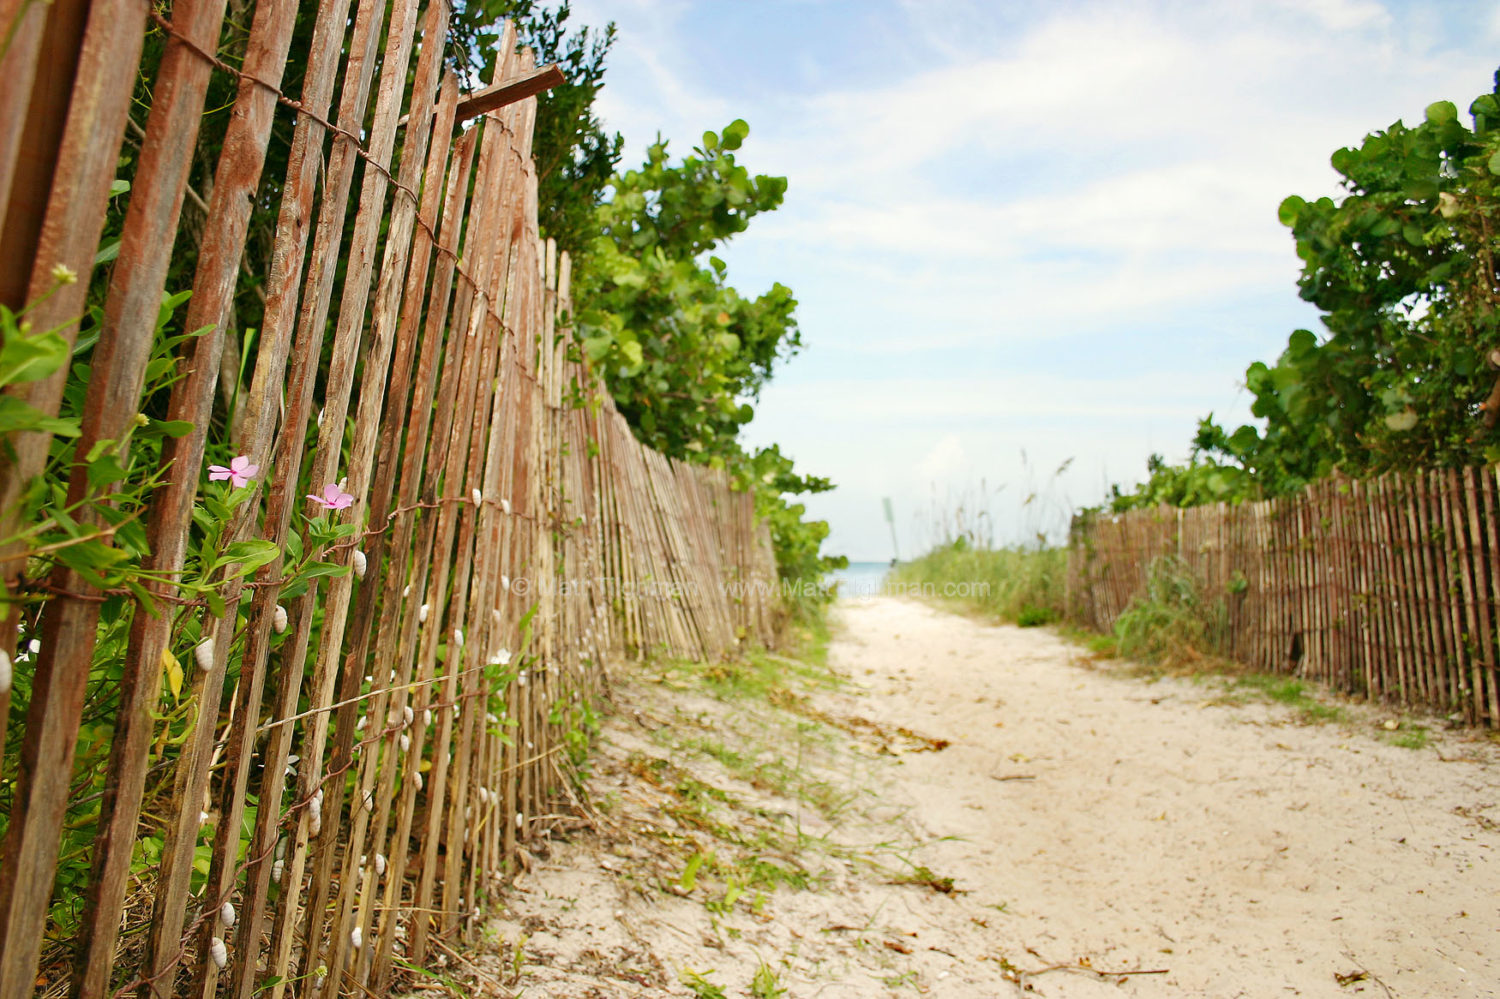 Fine art stock photograph of path leading to a secluded beach in Bear Cut Nature Preserve, Key Biscayne, Florida.